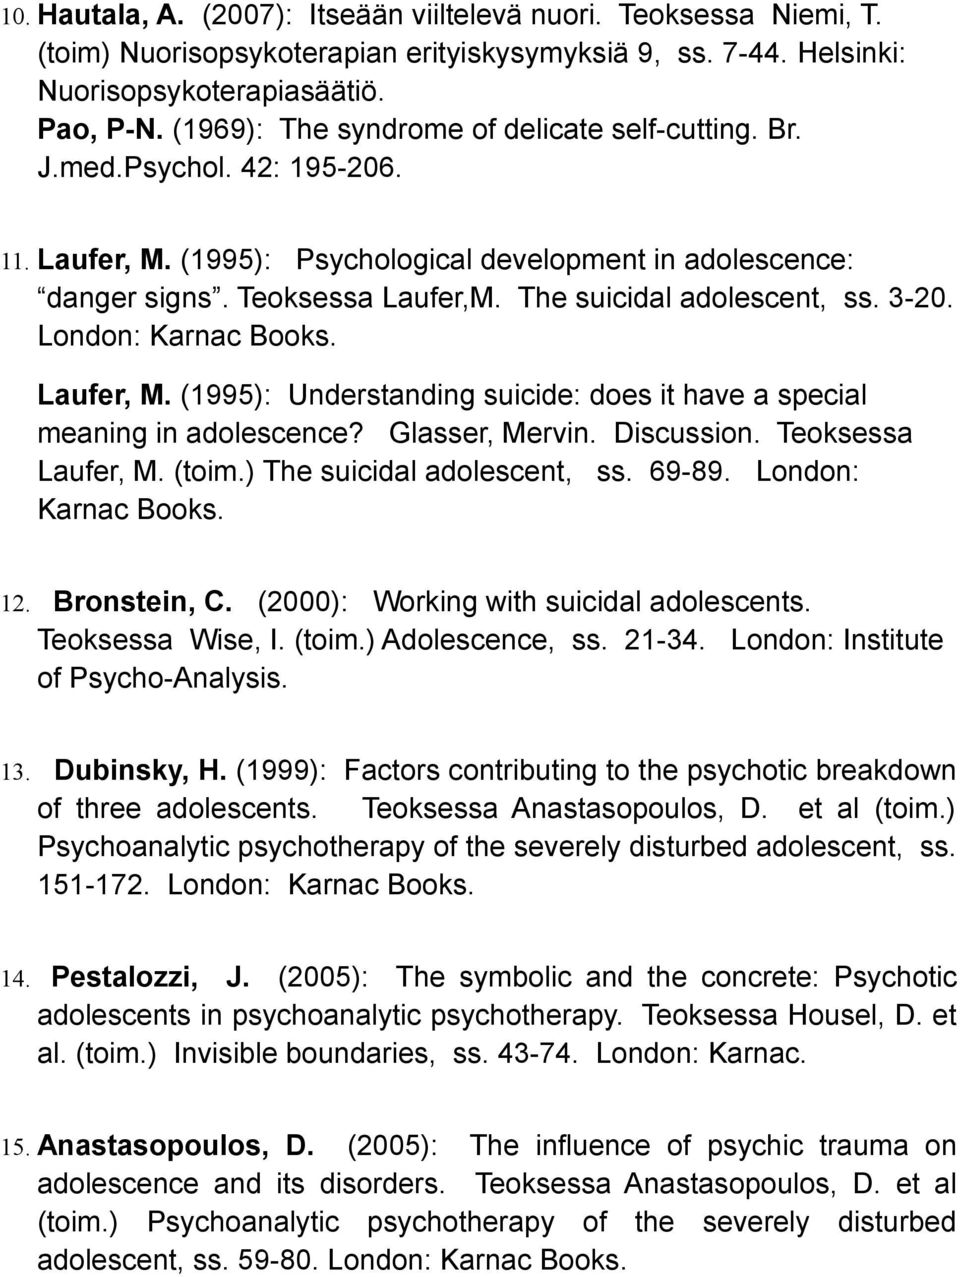 The suicidal adolescent, ss. 3-20. London: Karnac Books. Laufer, M. (1995): Understanding suicide: does it have a special meaning in adolescence? Glasser, Mervin. Discussion. Teoksessa Laufer, M.